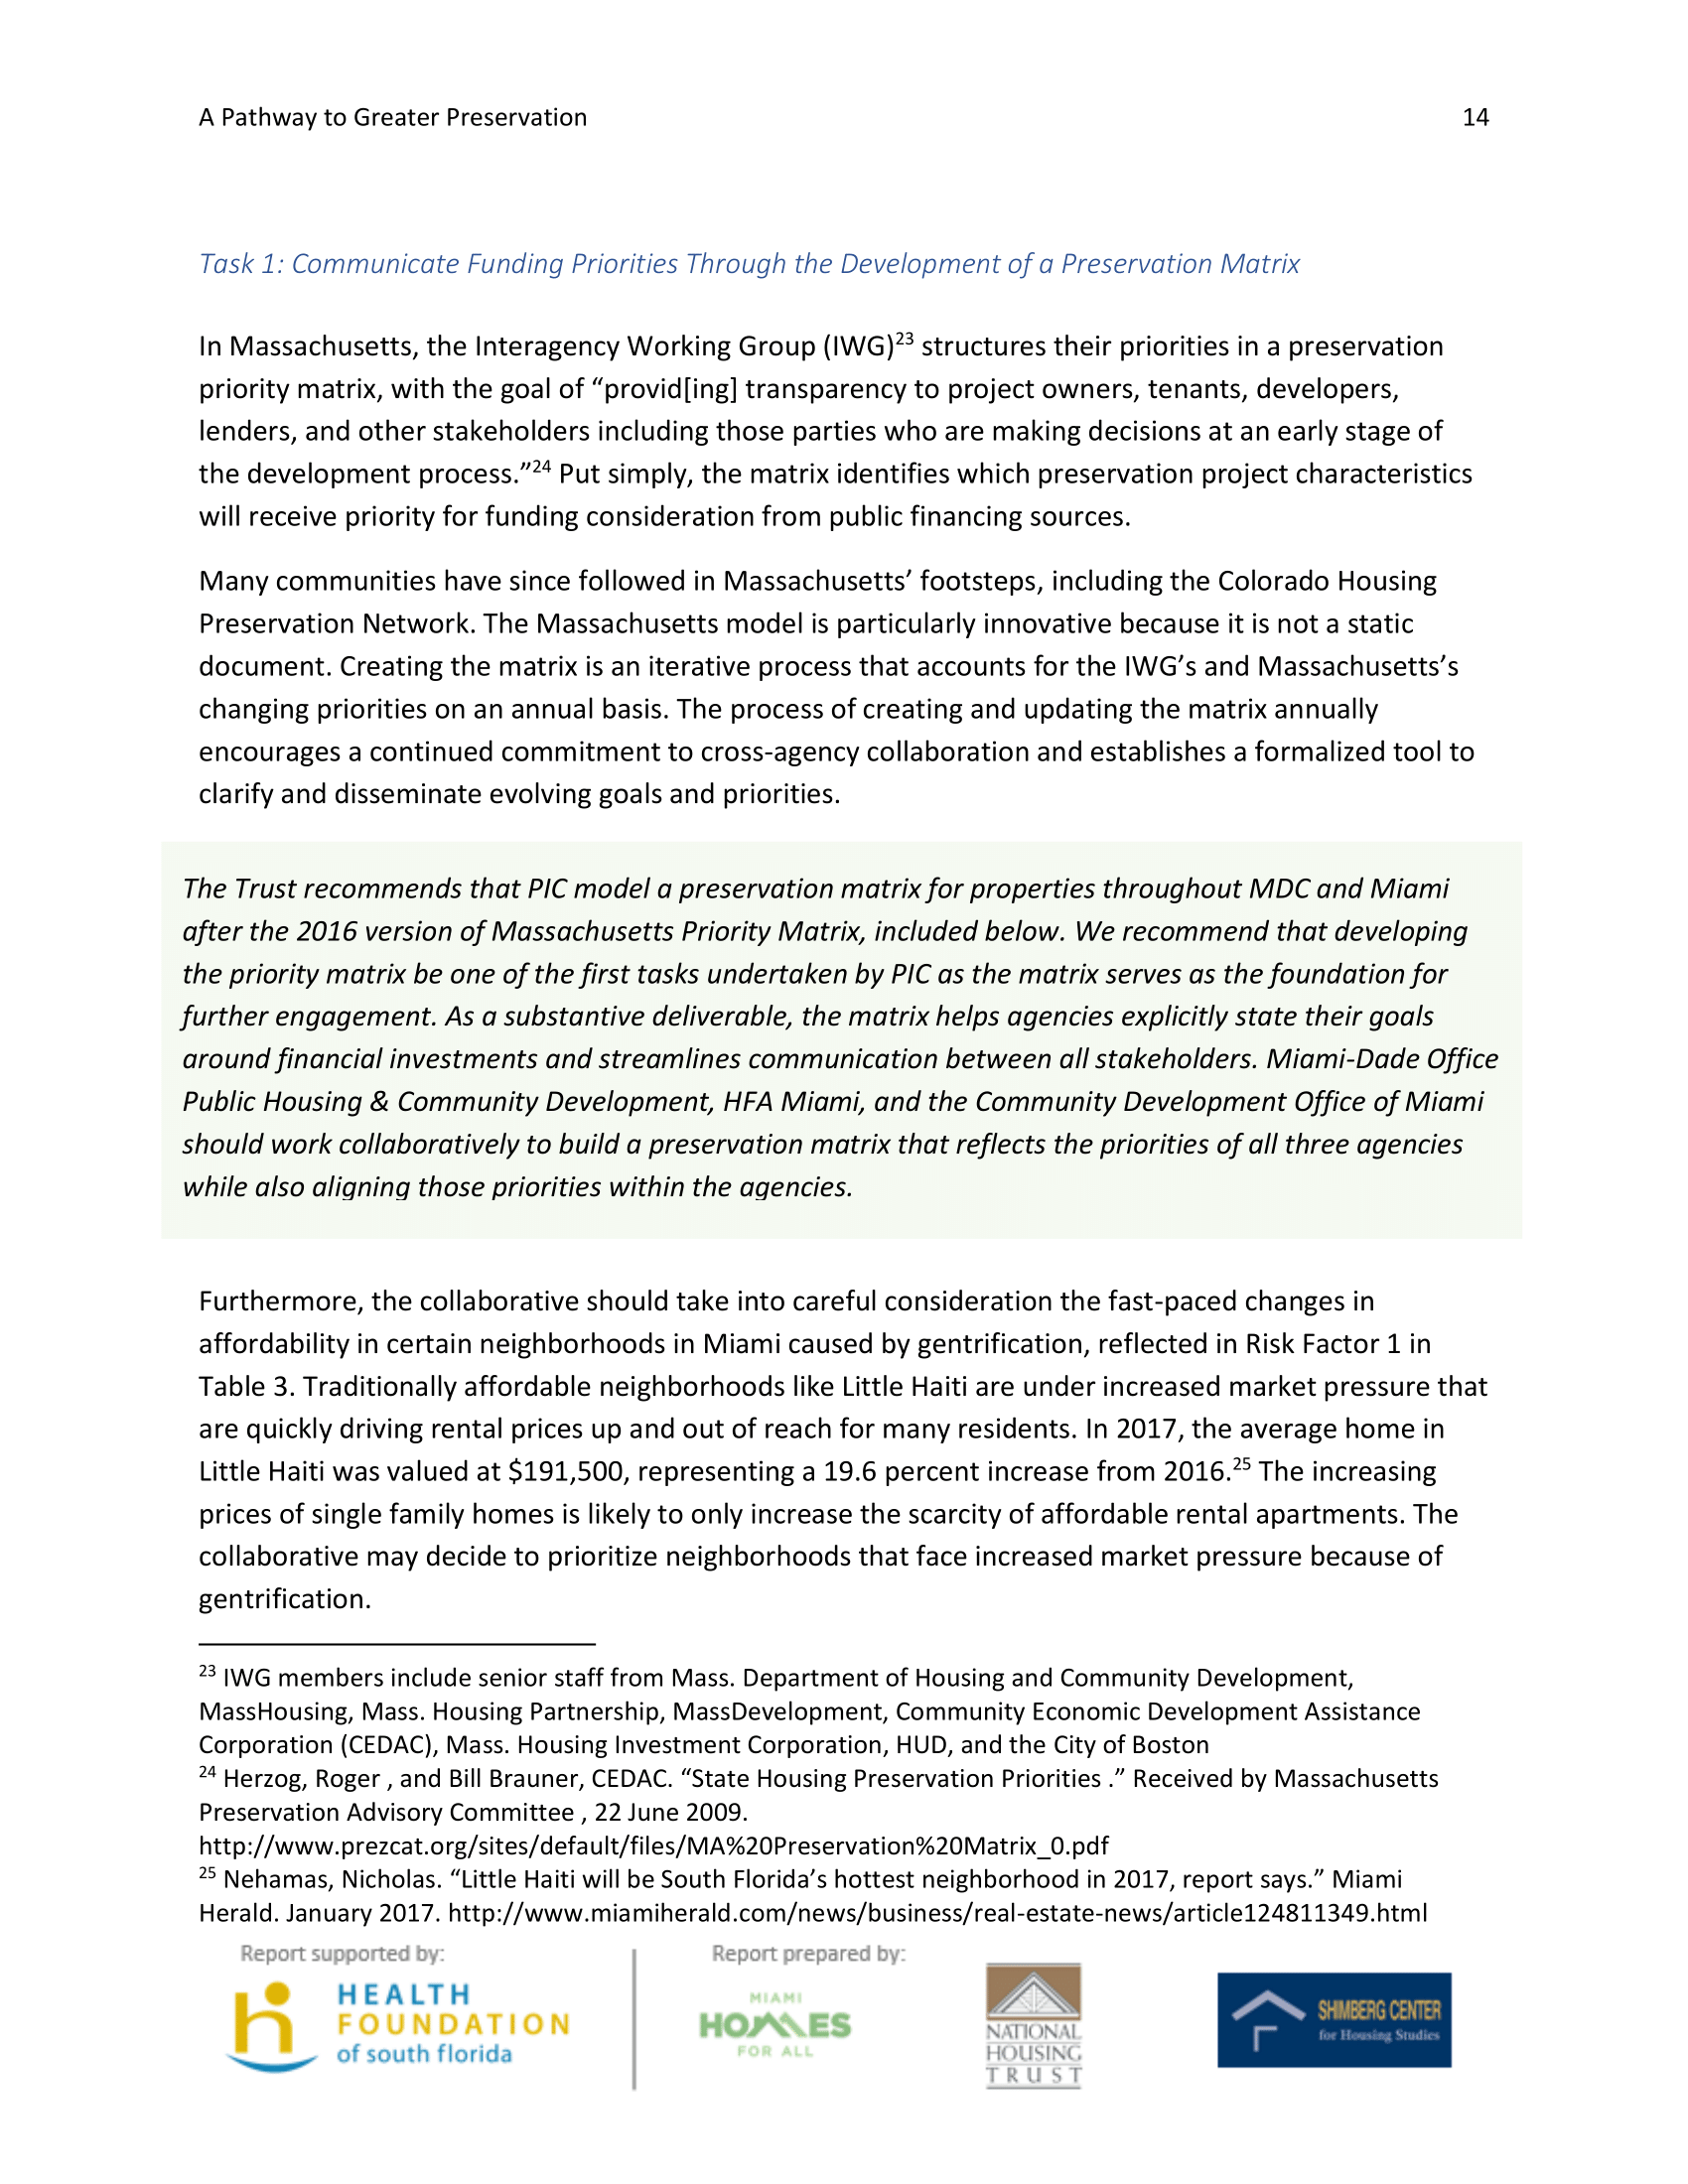 A Pathway to Greater Preservation - February 2018-22.png